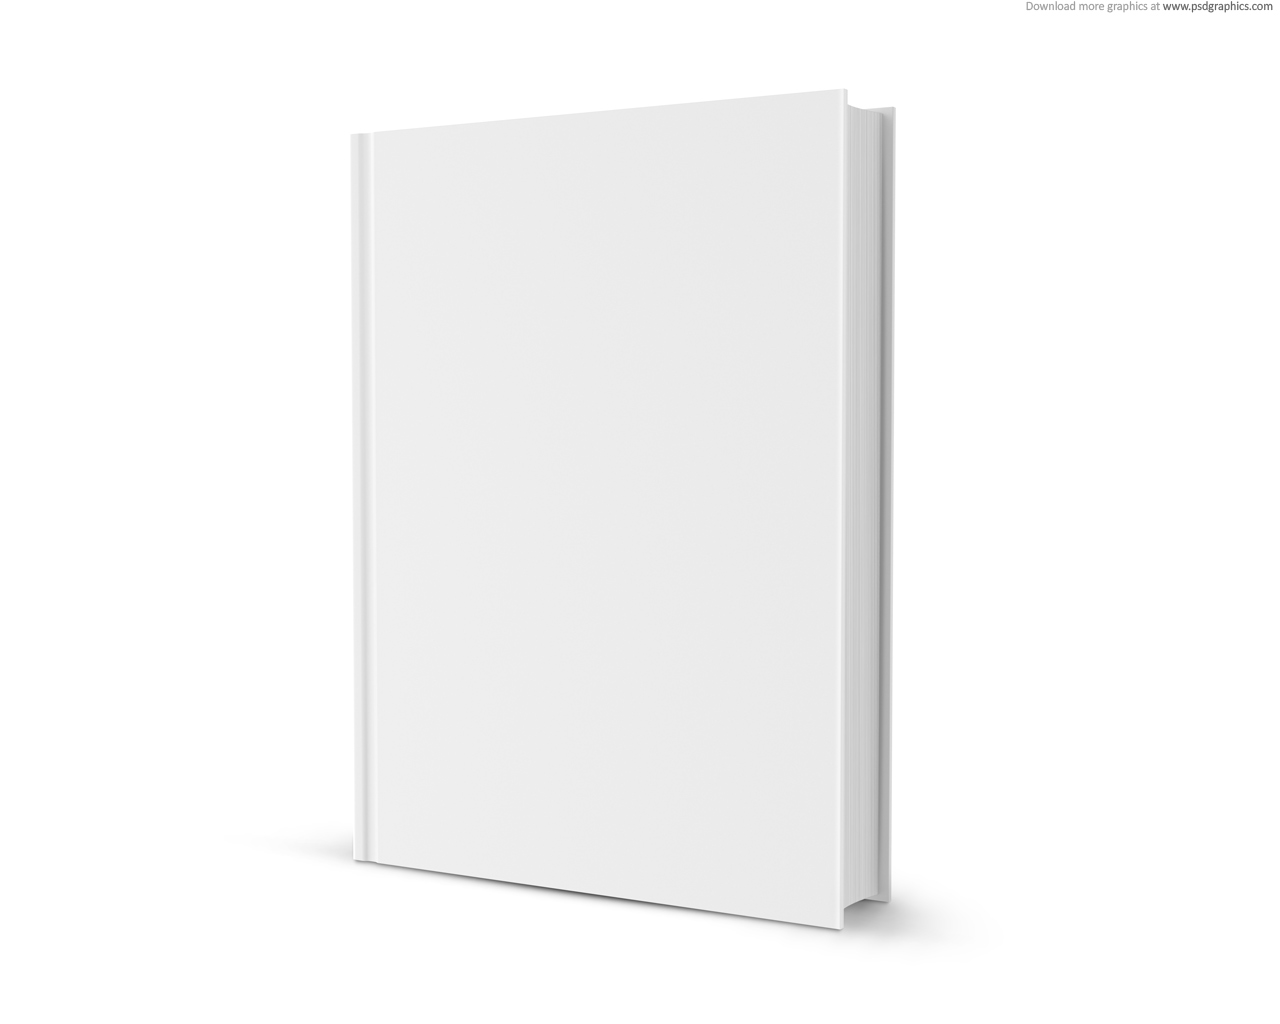 Blank Book Cover Template Free ~ Free blank book cover template psd images